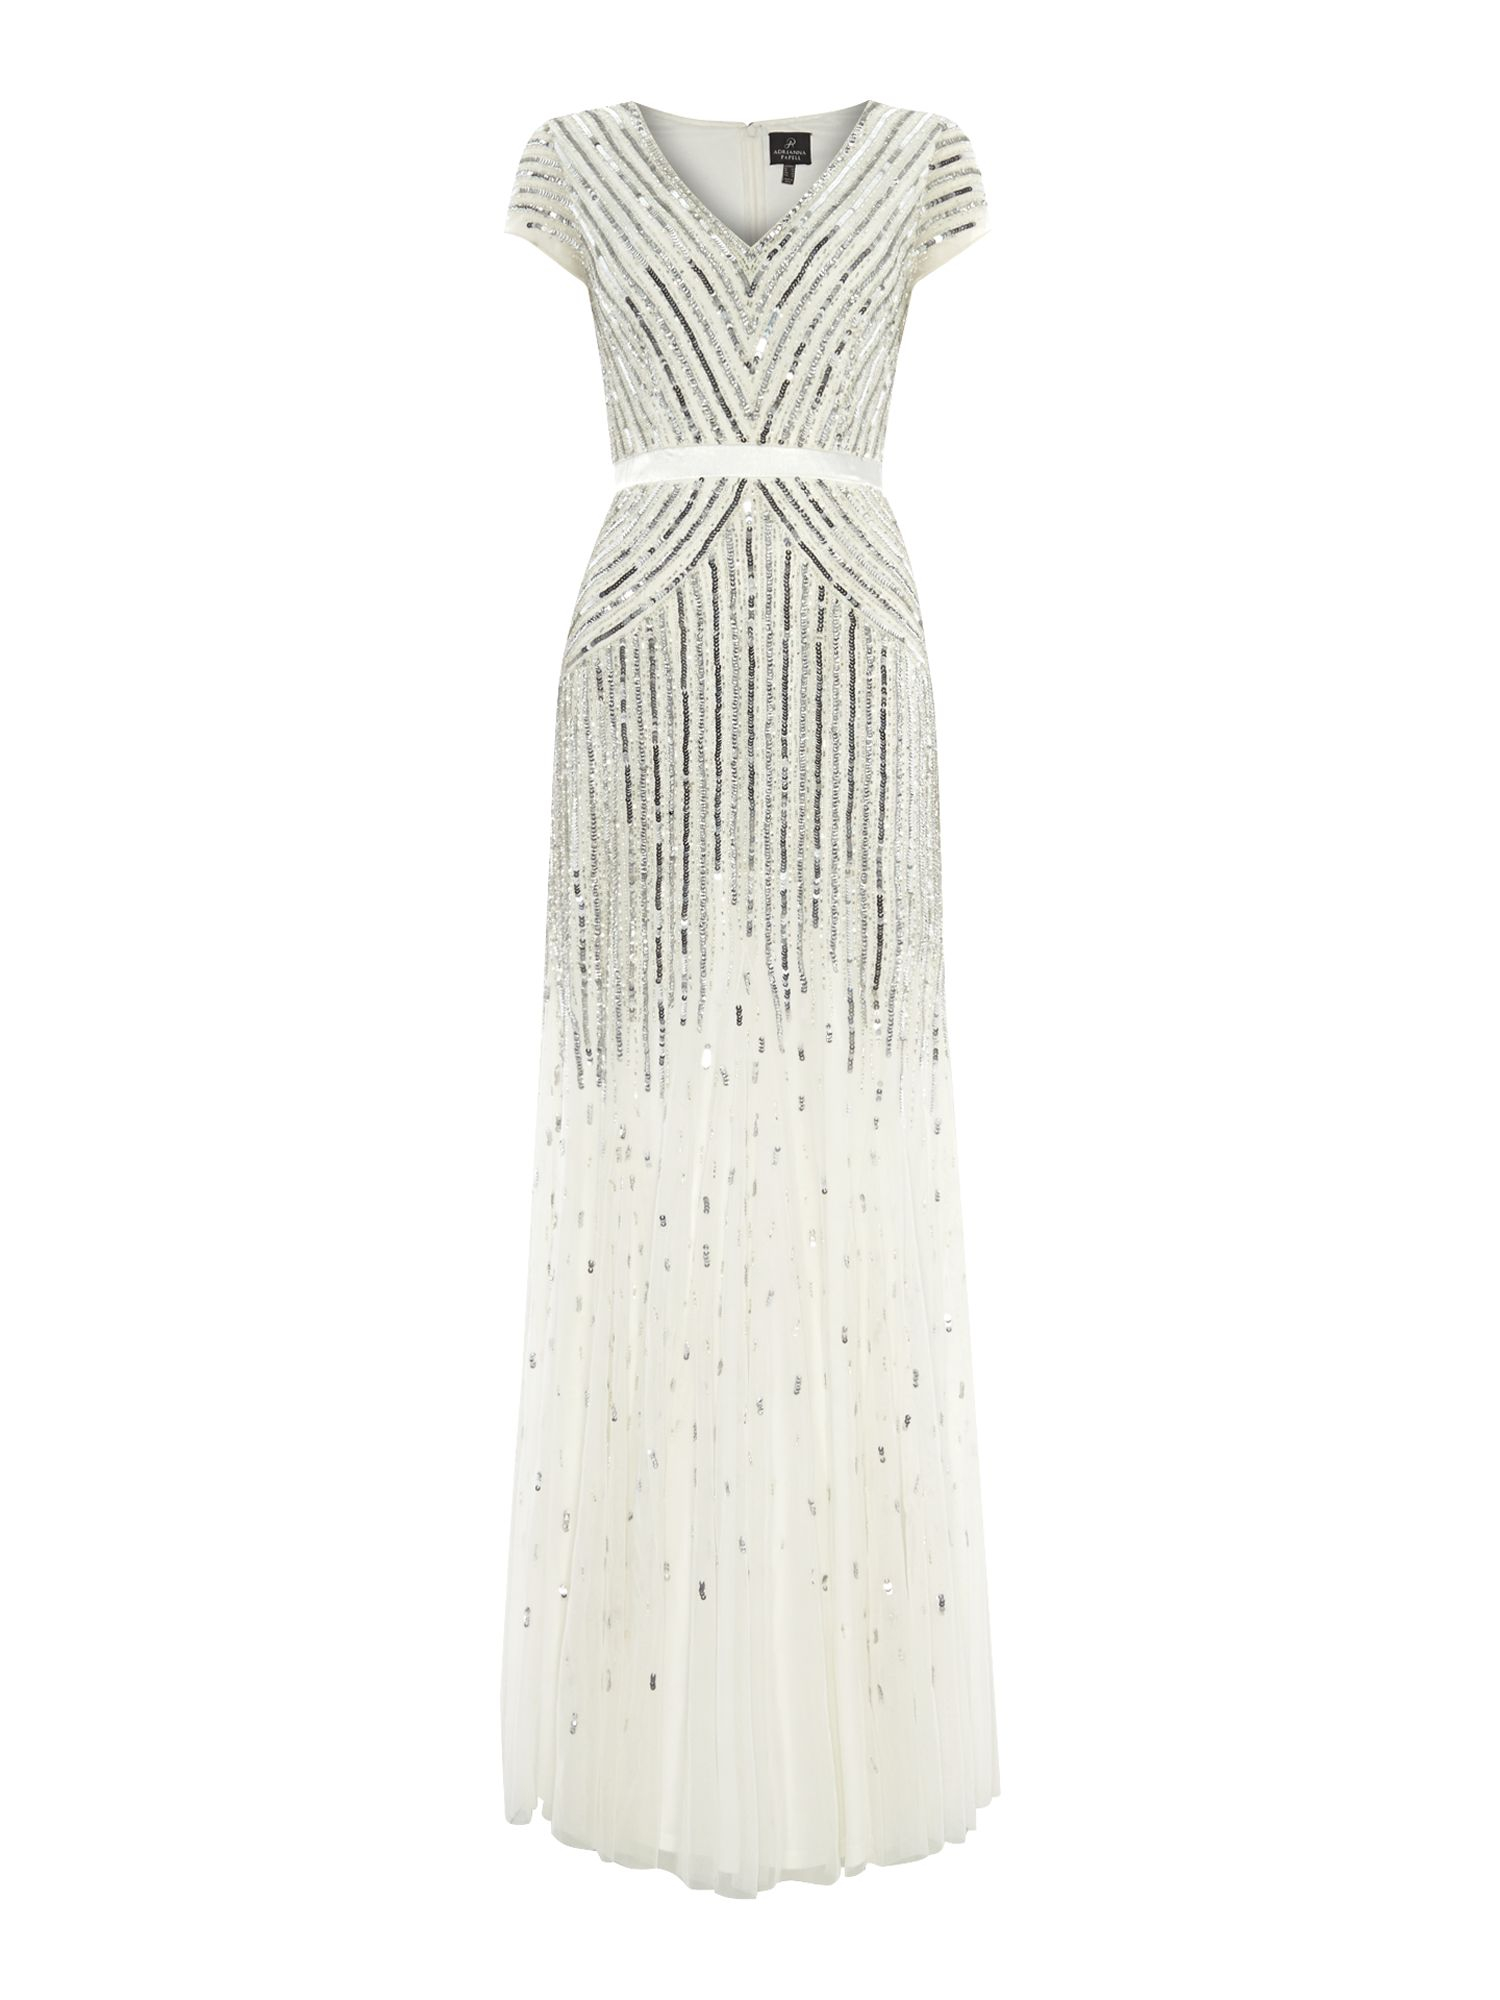 Adrianna papell Cap Sleeve Mesh Beaded Dress in White | Lyst